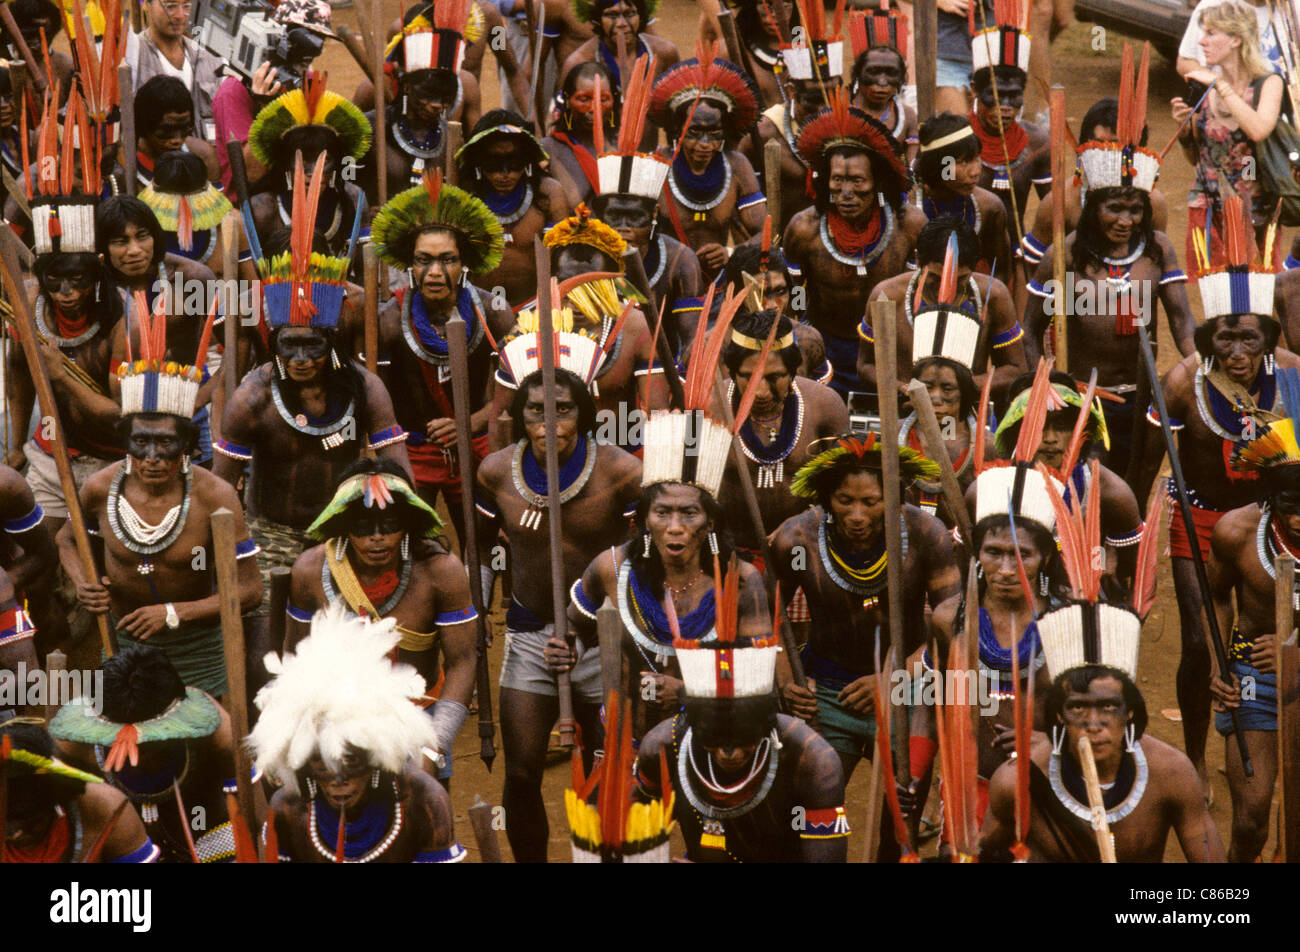 Altamira, Para State, Brazil. Indians in colourful feather headdresses; Kayapo, Arara, protesting against dam construction. - Stock Image